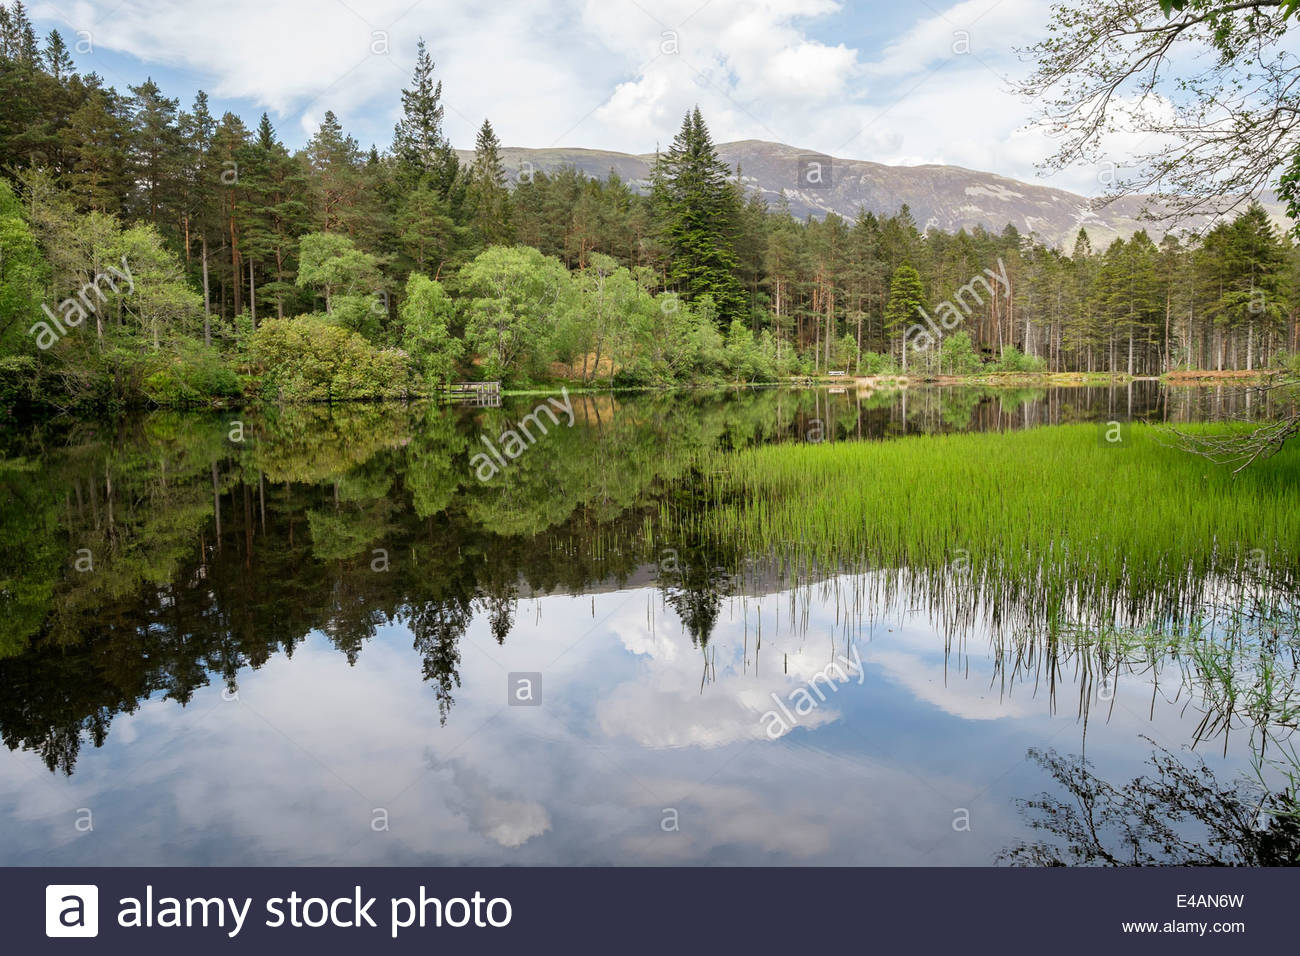 Picturesque Glencoe Lochan and woodland created by Lord Strathcona for Canadian wife. Glencoe Highland Scotland - Stock Image